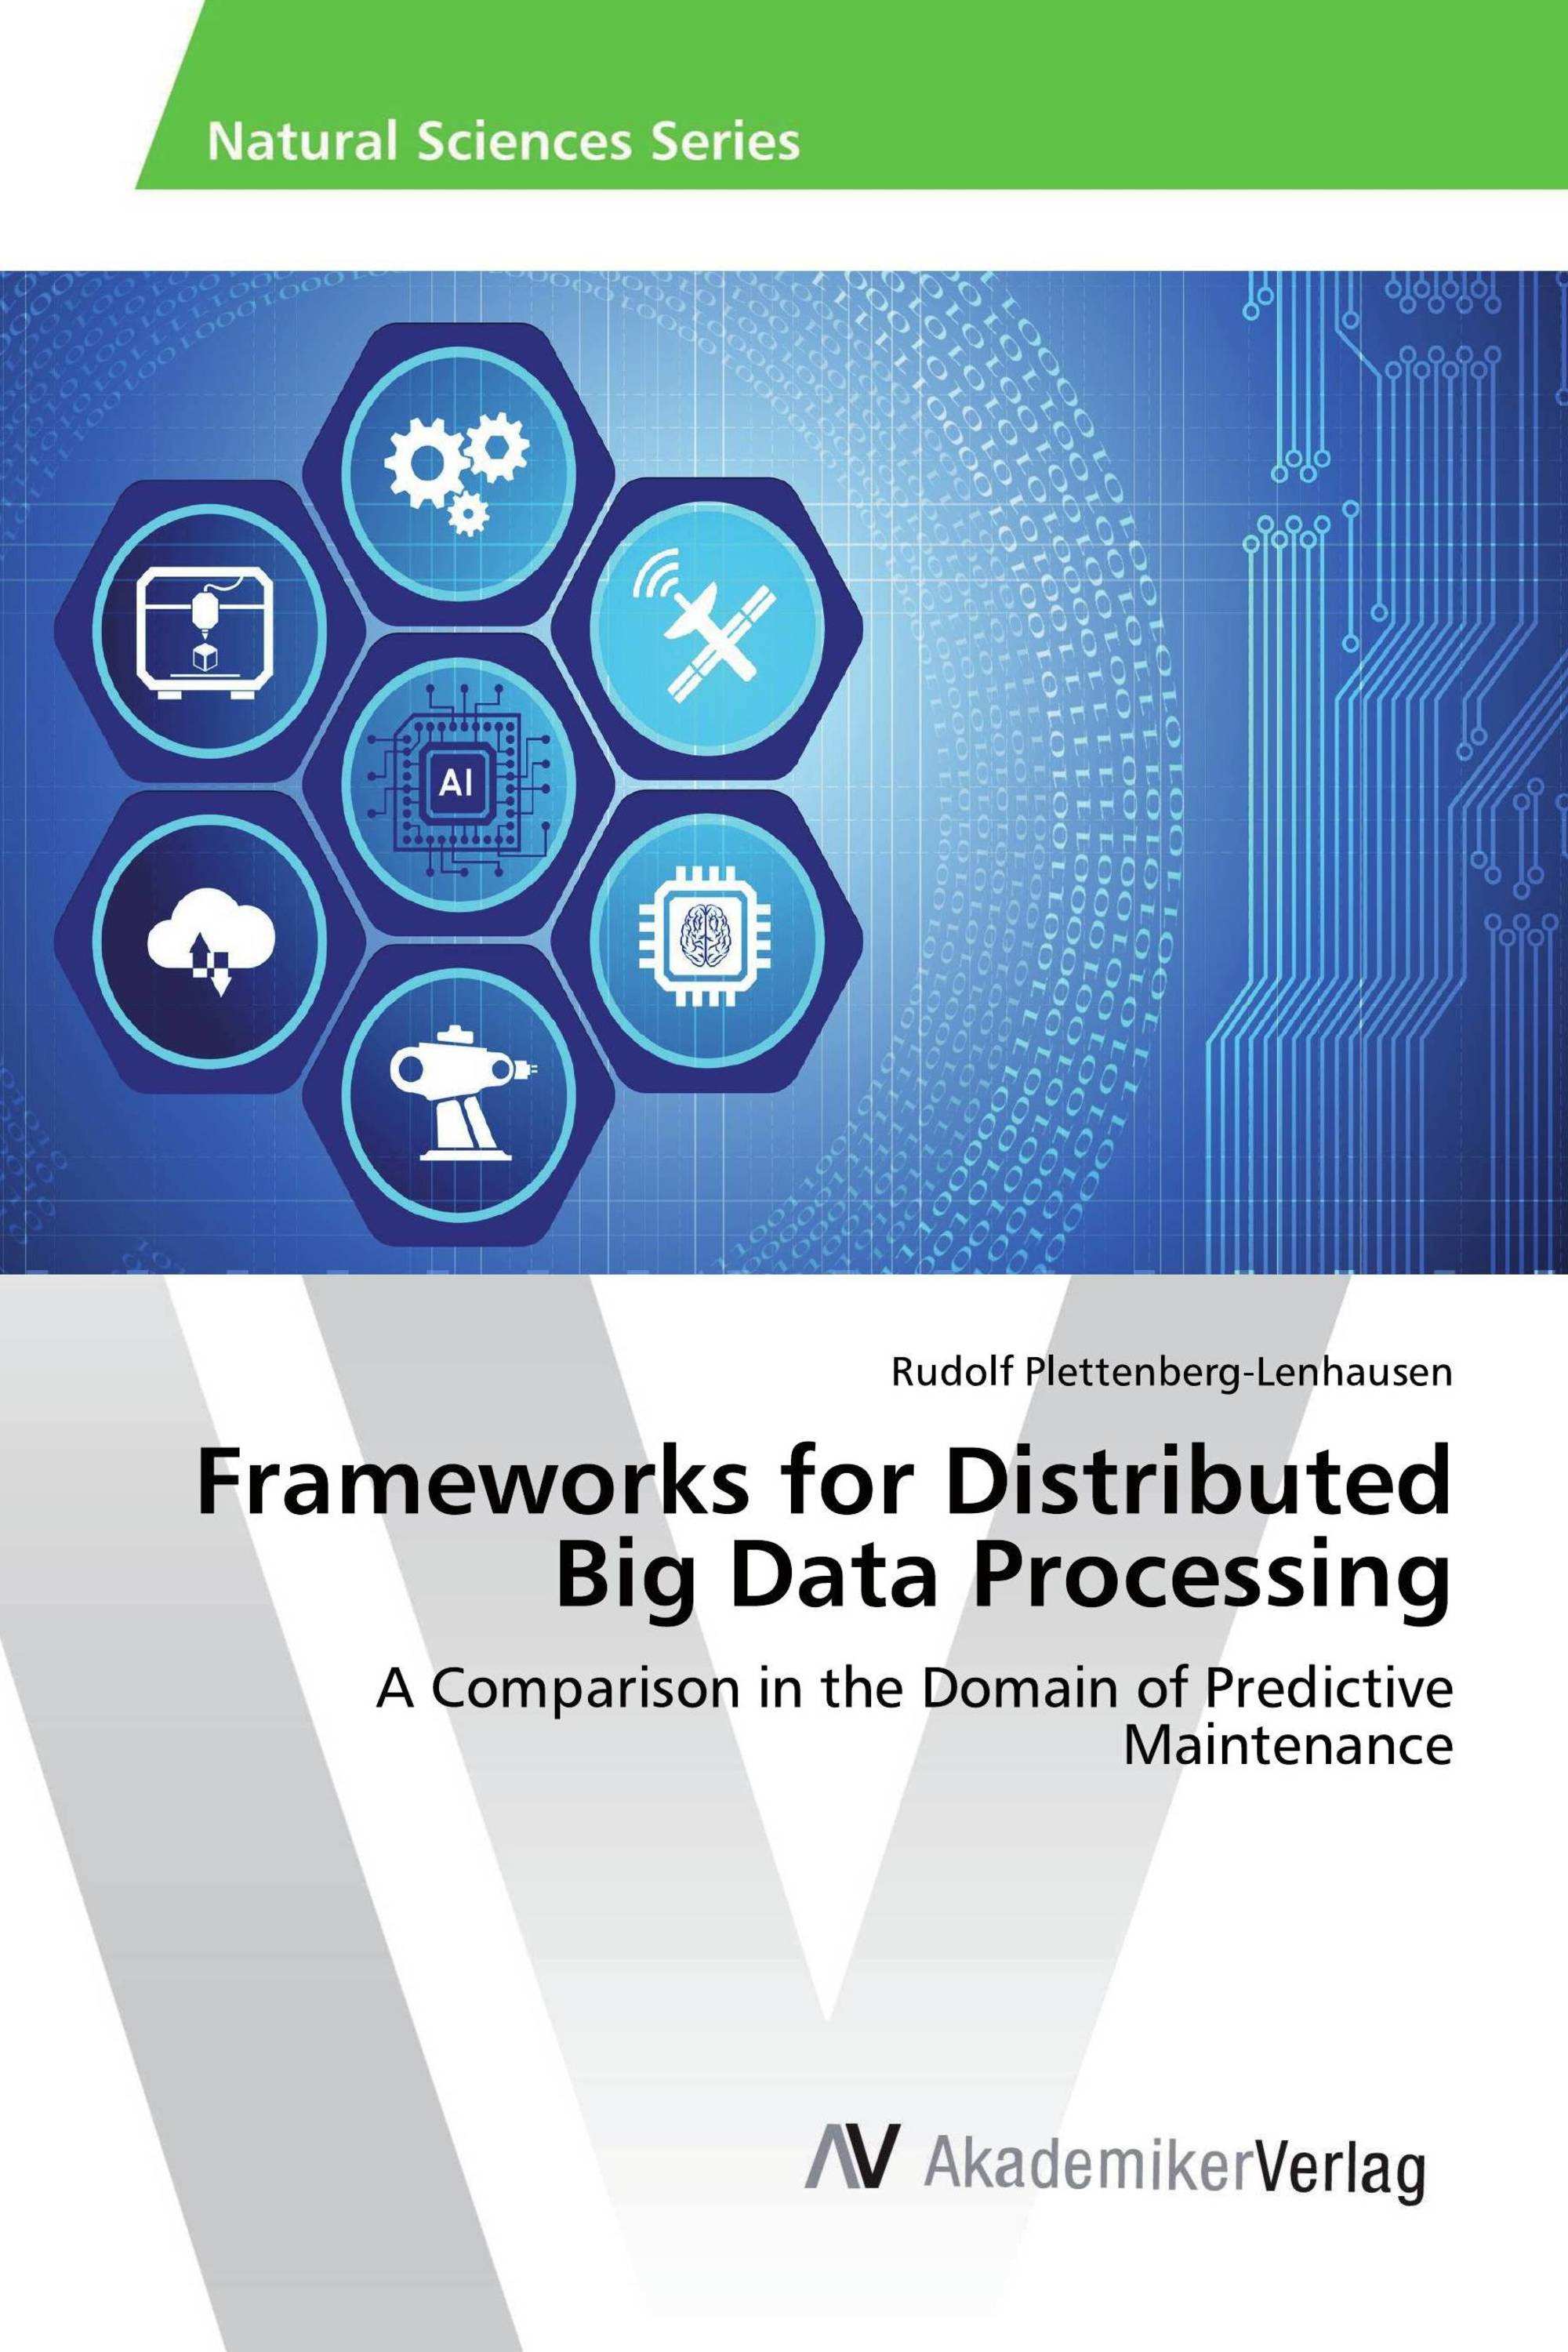 Frameworks for Distributed Big Data Processing